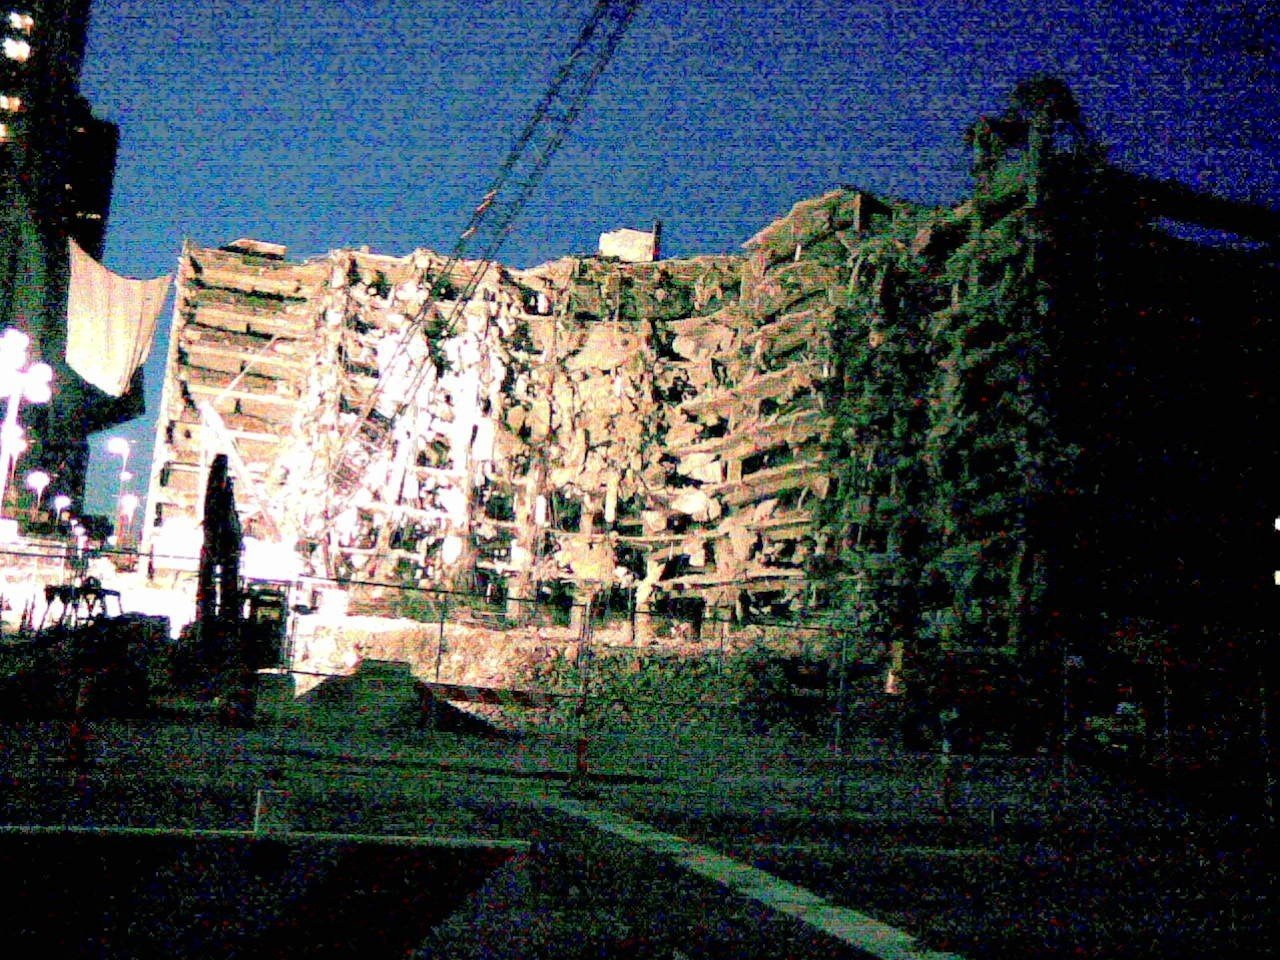 Downtown Cincinnati Demolition